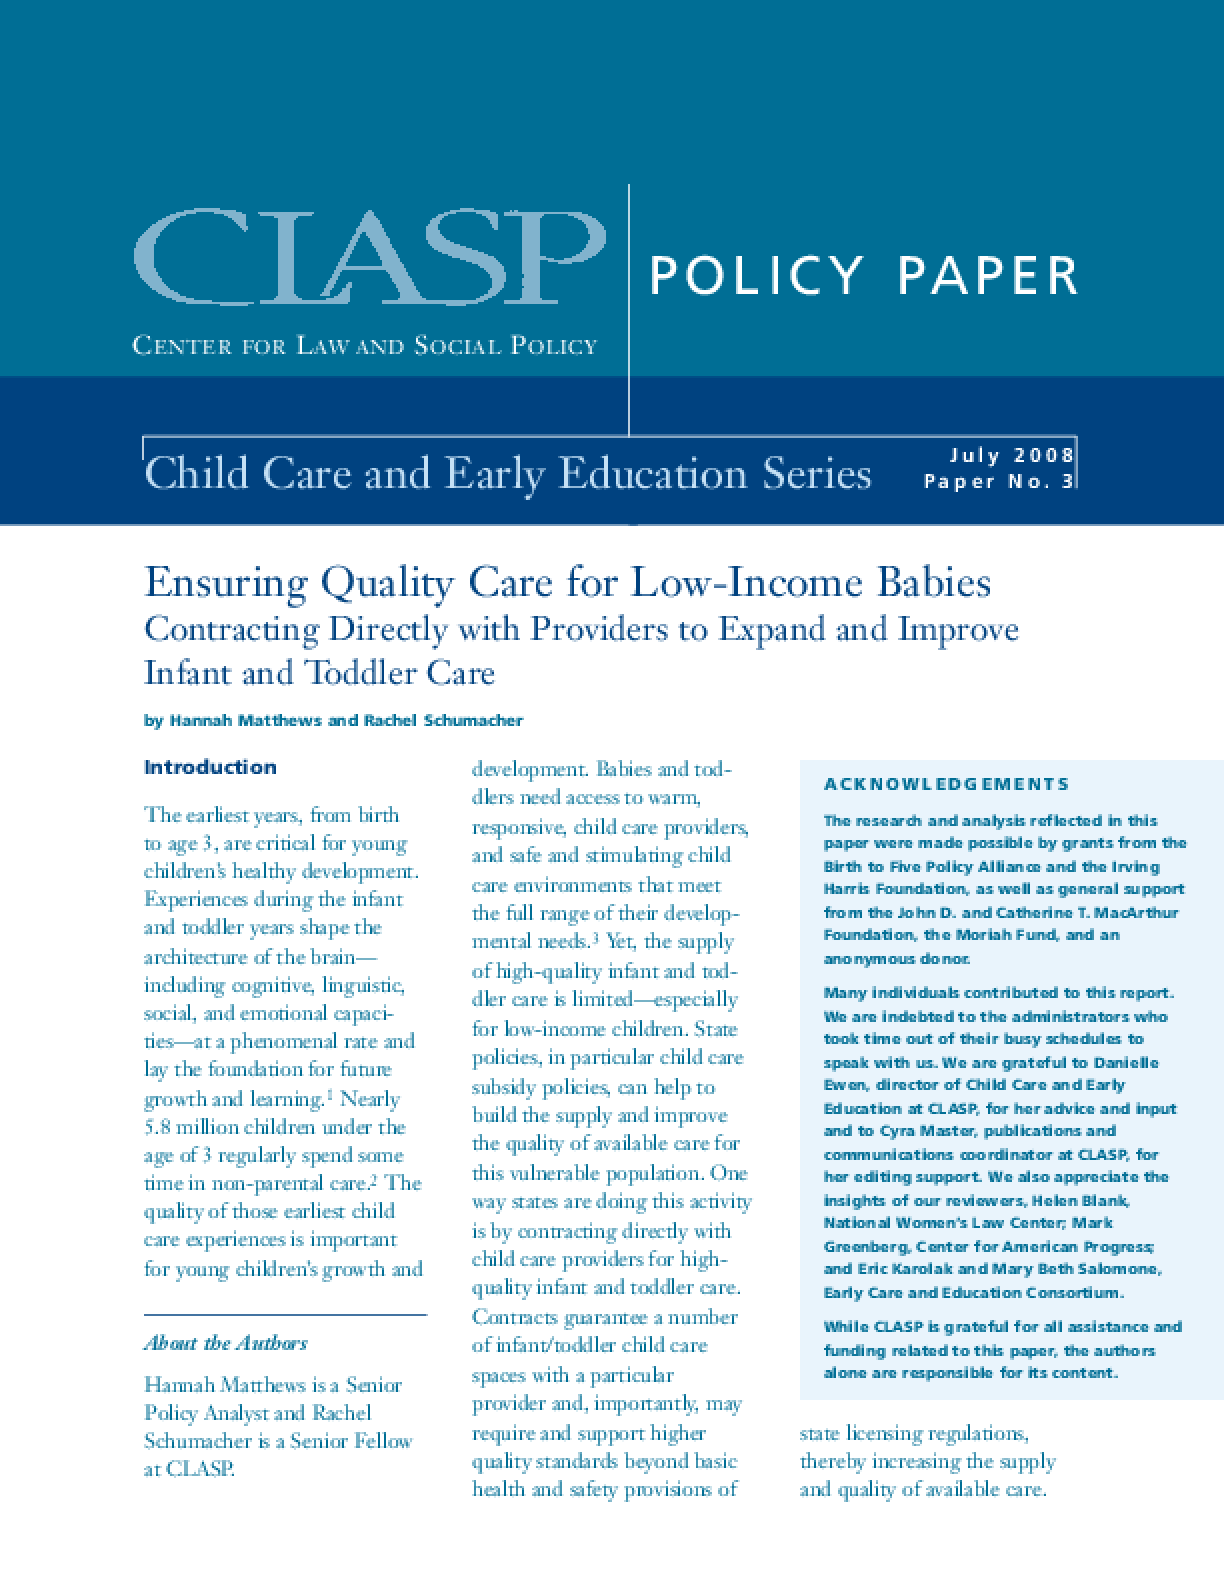 Ensuring Quality Care for Low-Income Babies: Contracting Directly With Providers to Expand and Improve Infant and Toddler Care